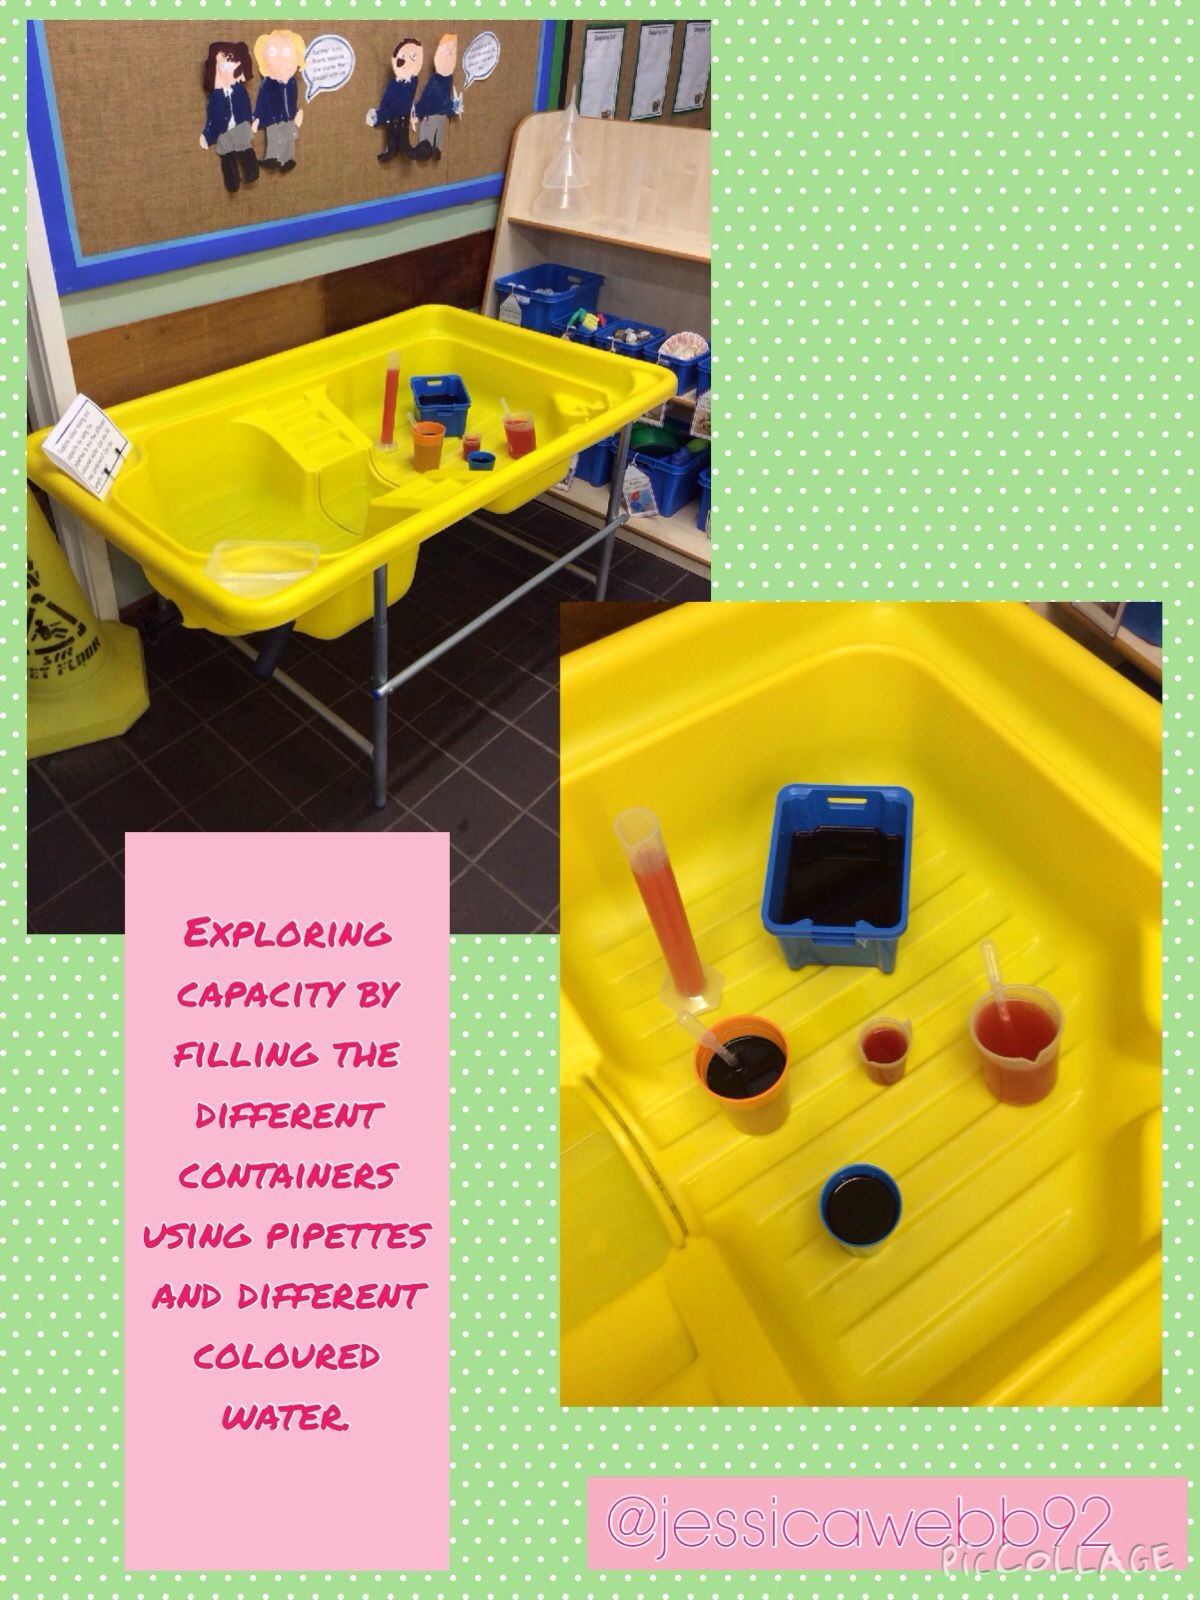 Exploring Capacity With Different Containers And Different